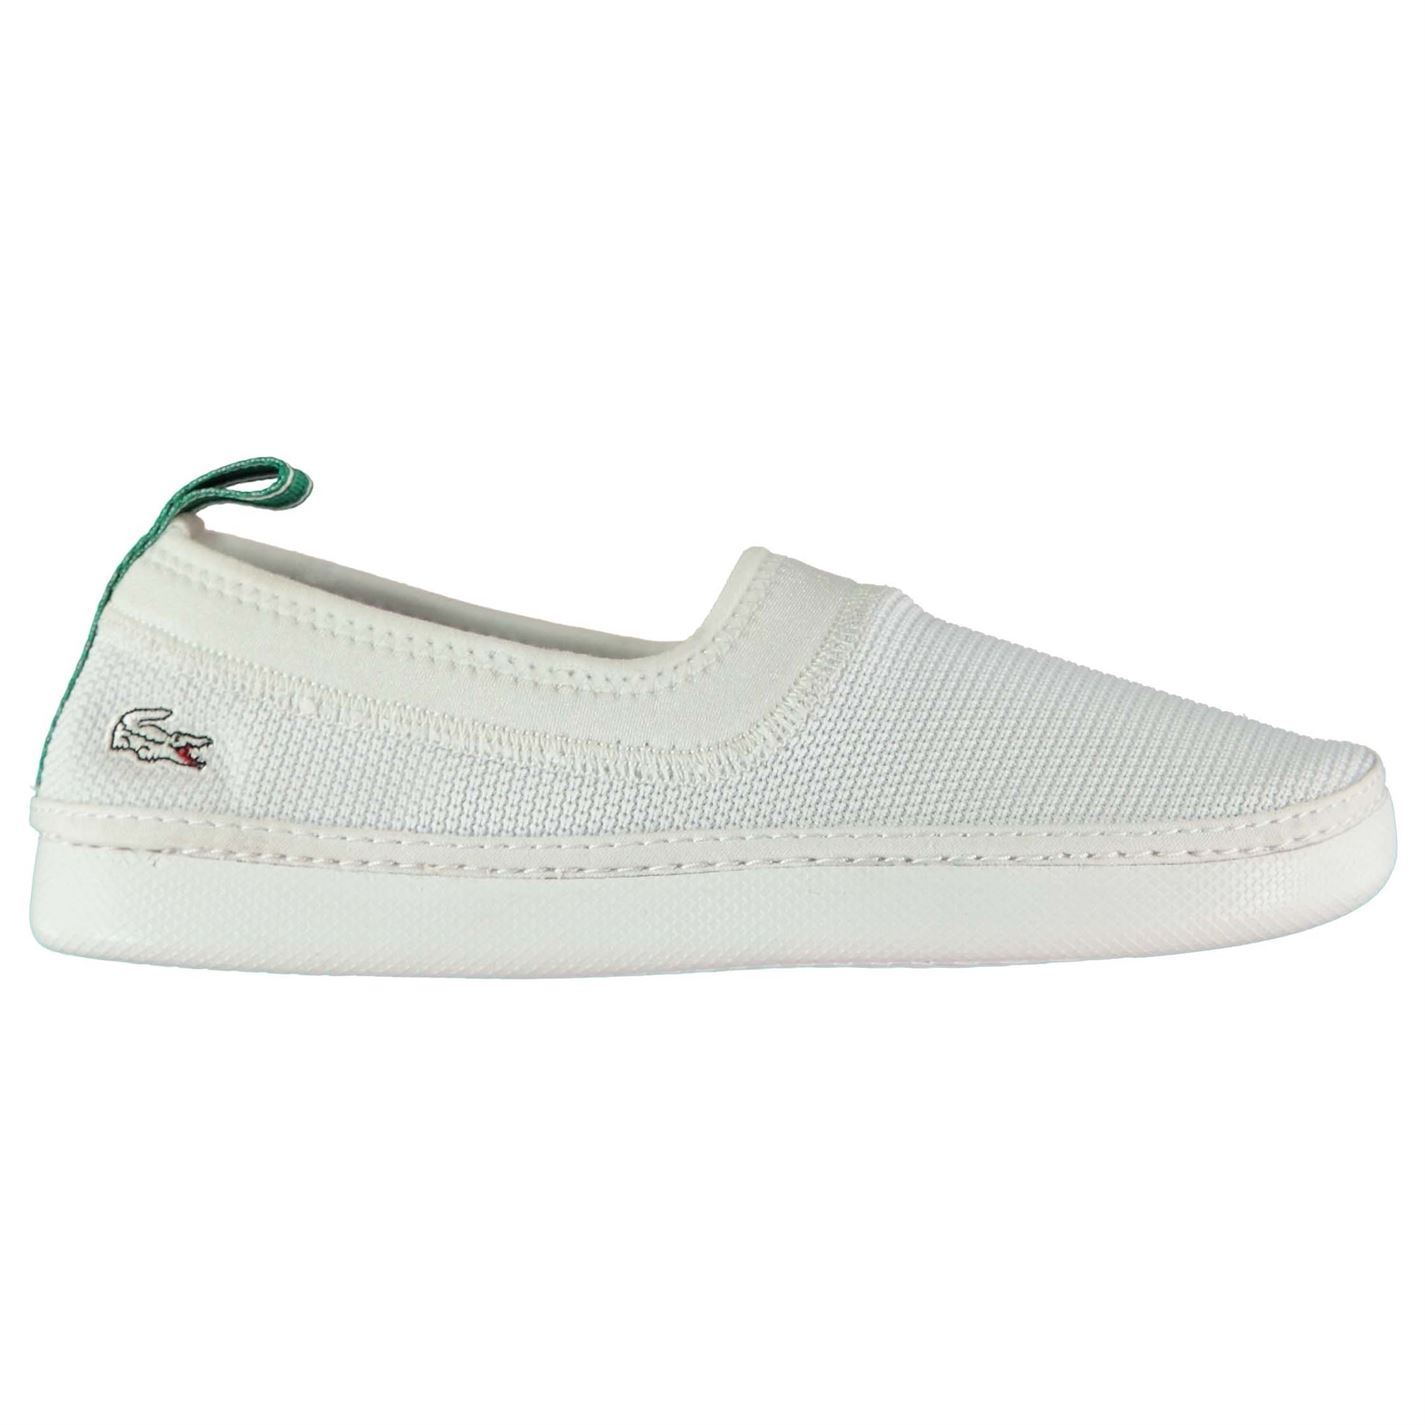 473454844163 Details about Kids Lacoste Lydro 118 Childs Low Trainers New